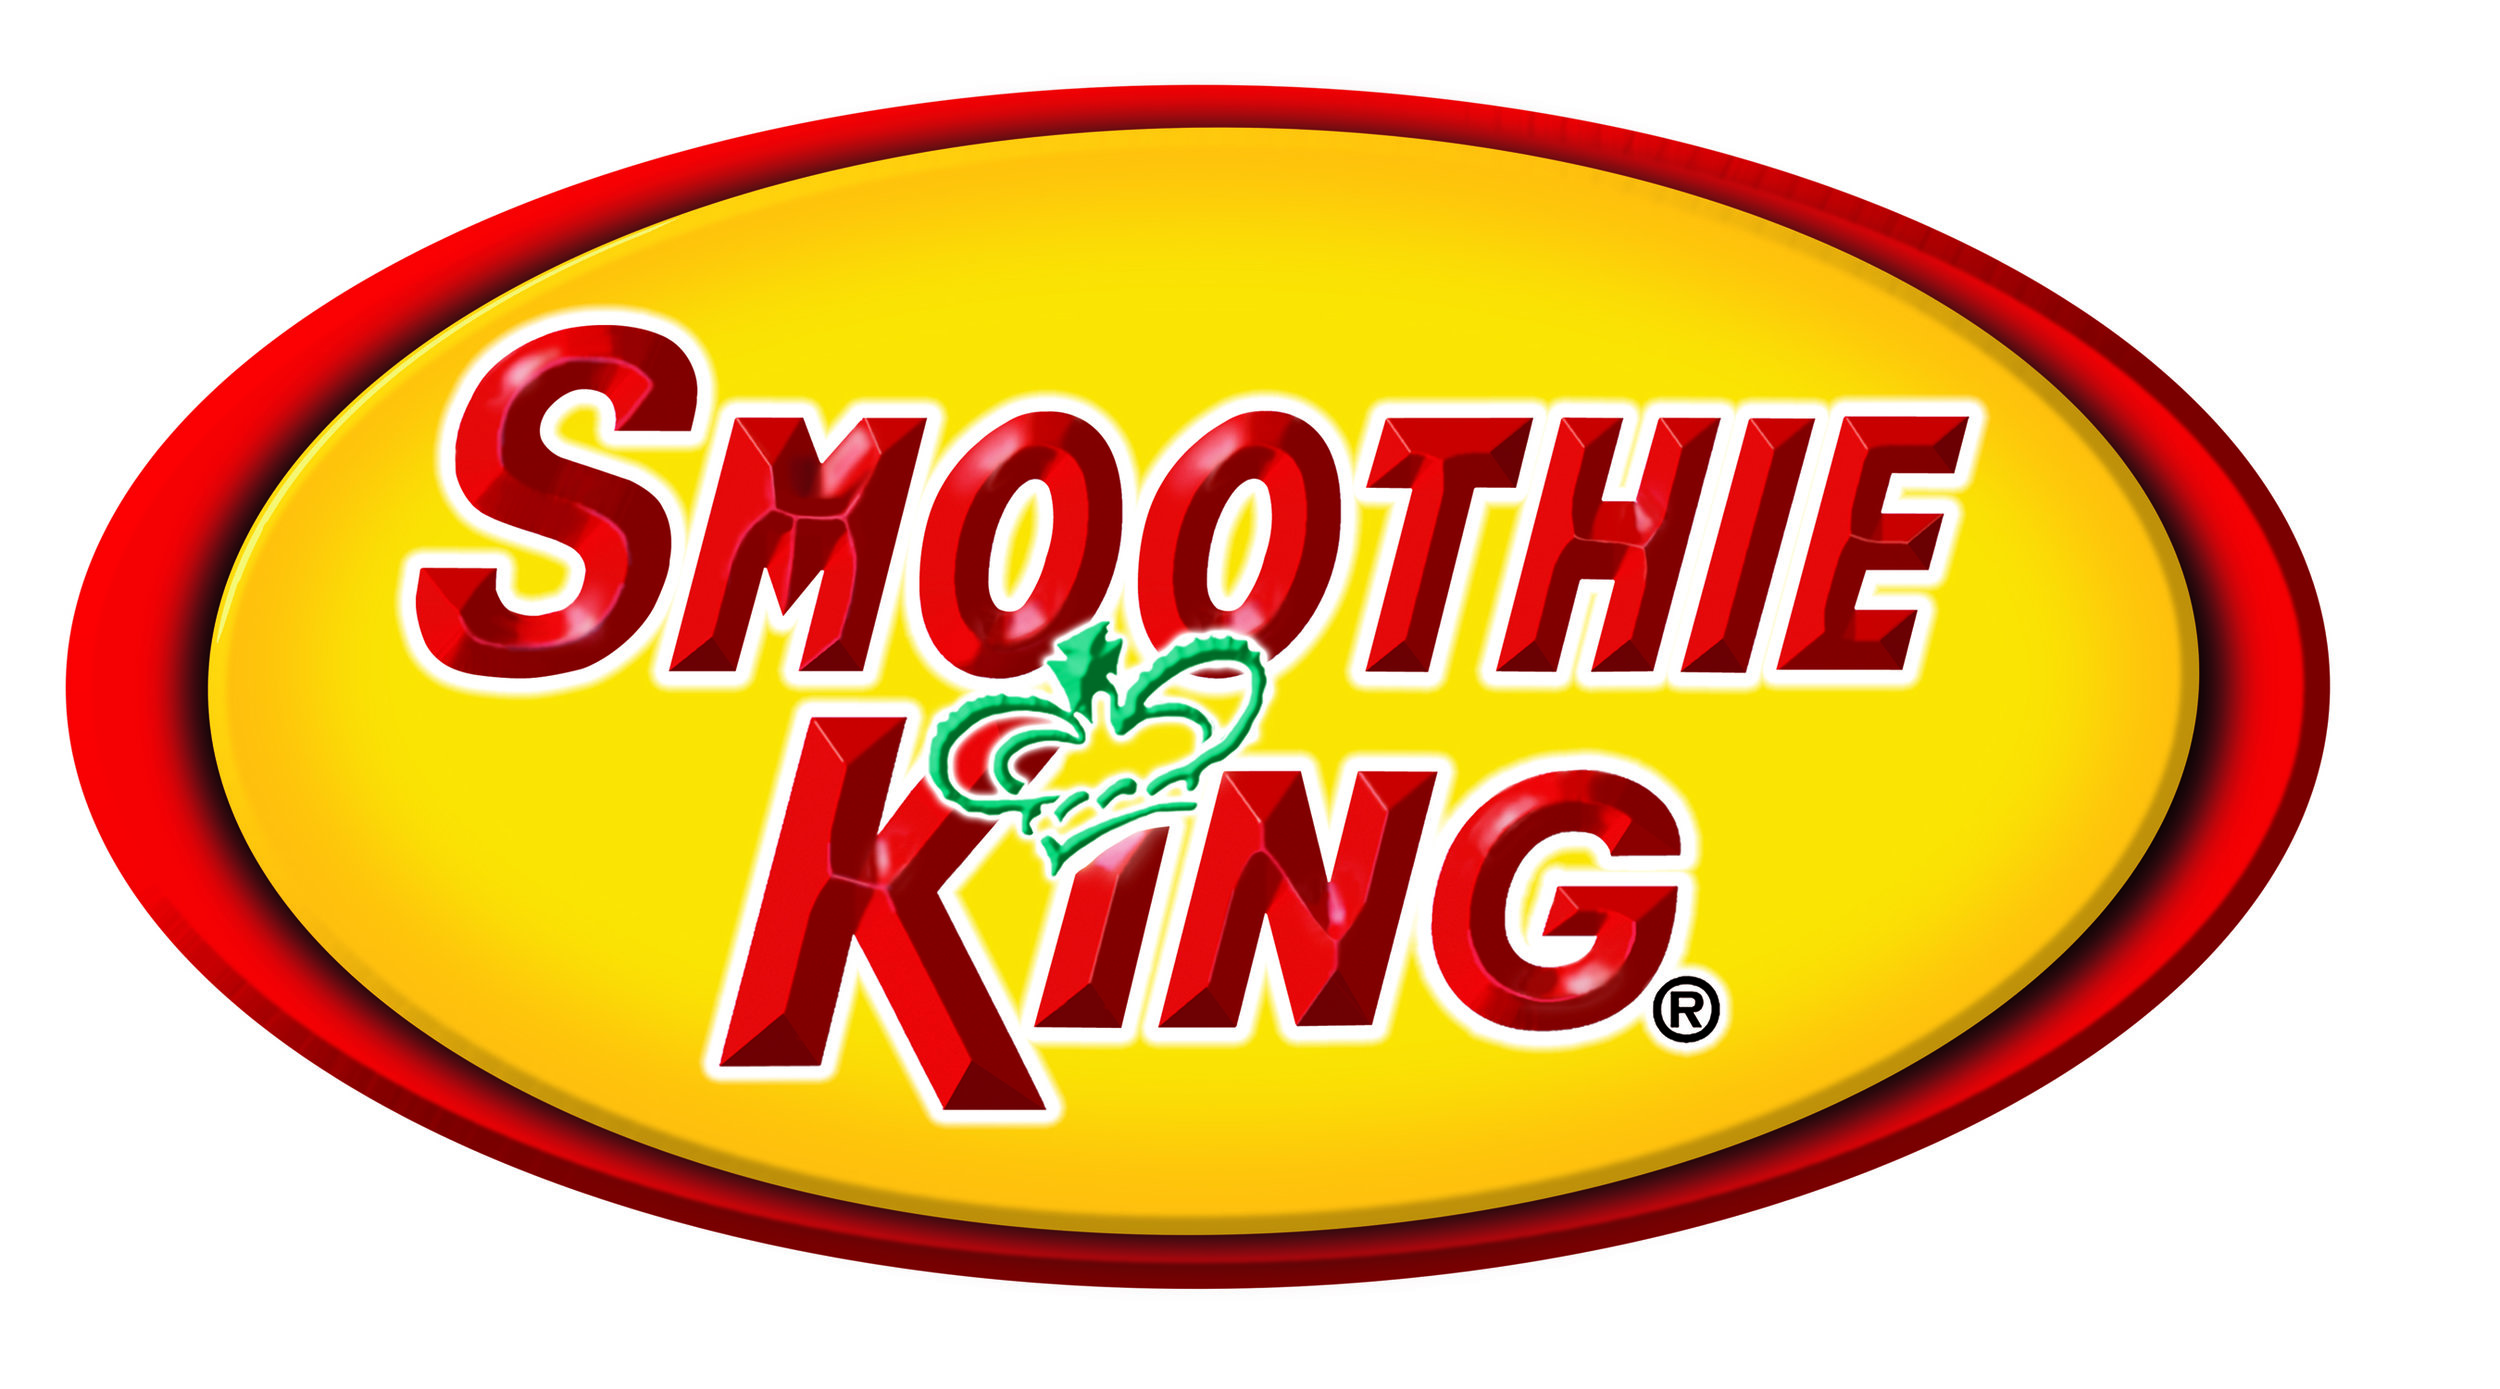 jaxka-smoothie-king-georgia-atlanta-commercial-construction-development-general-contractor-contracting-lending-brokerage.jpg